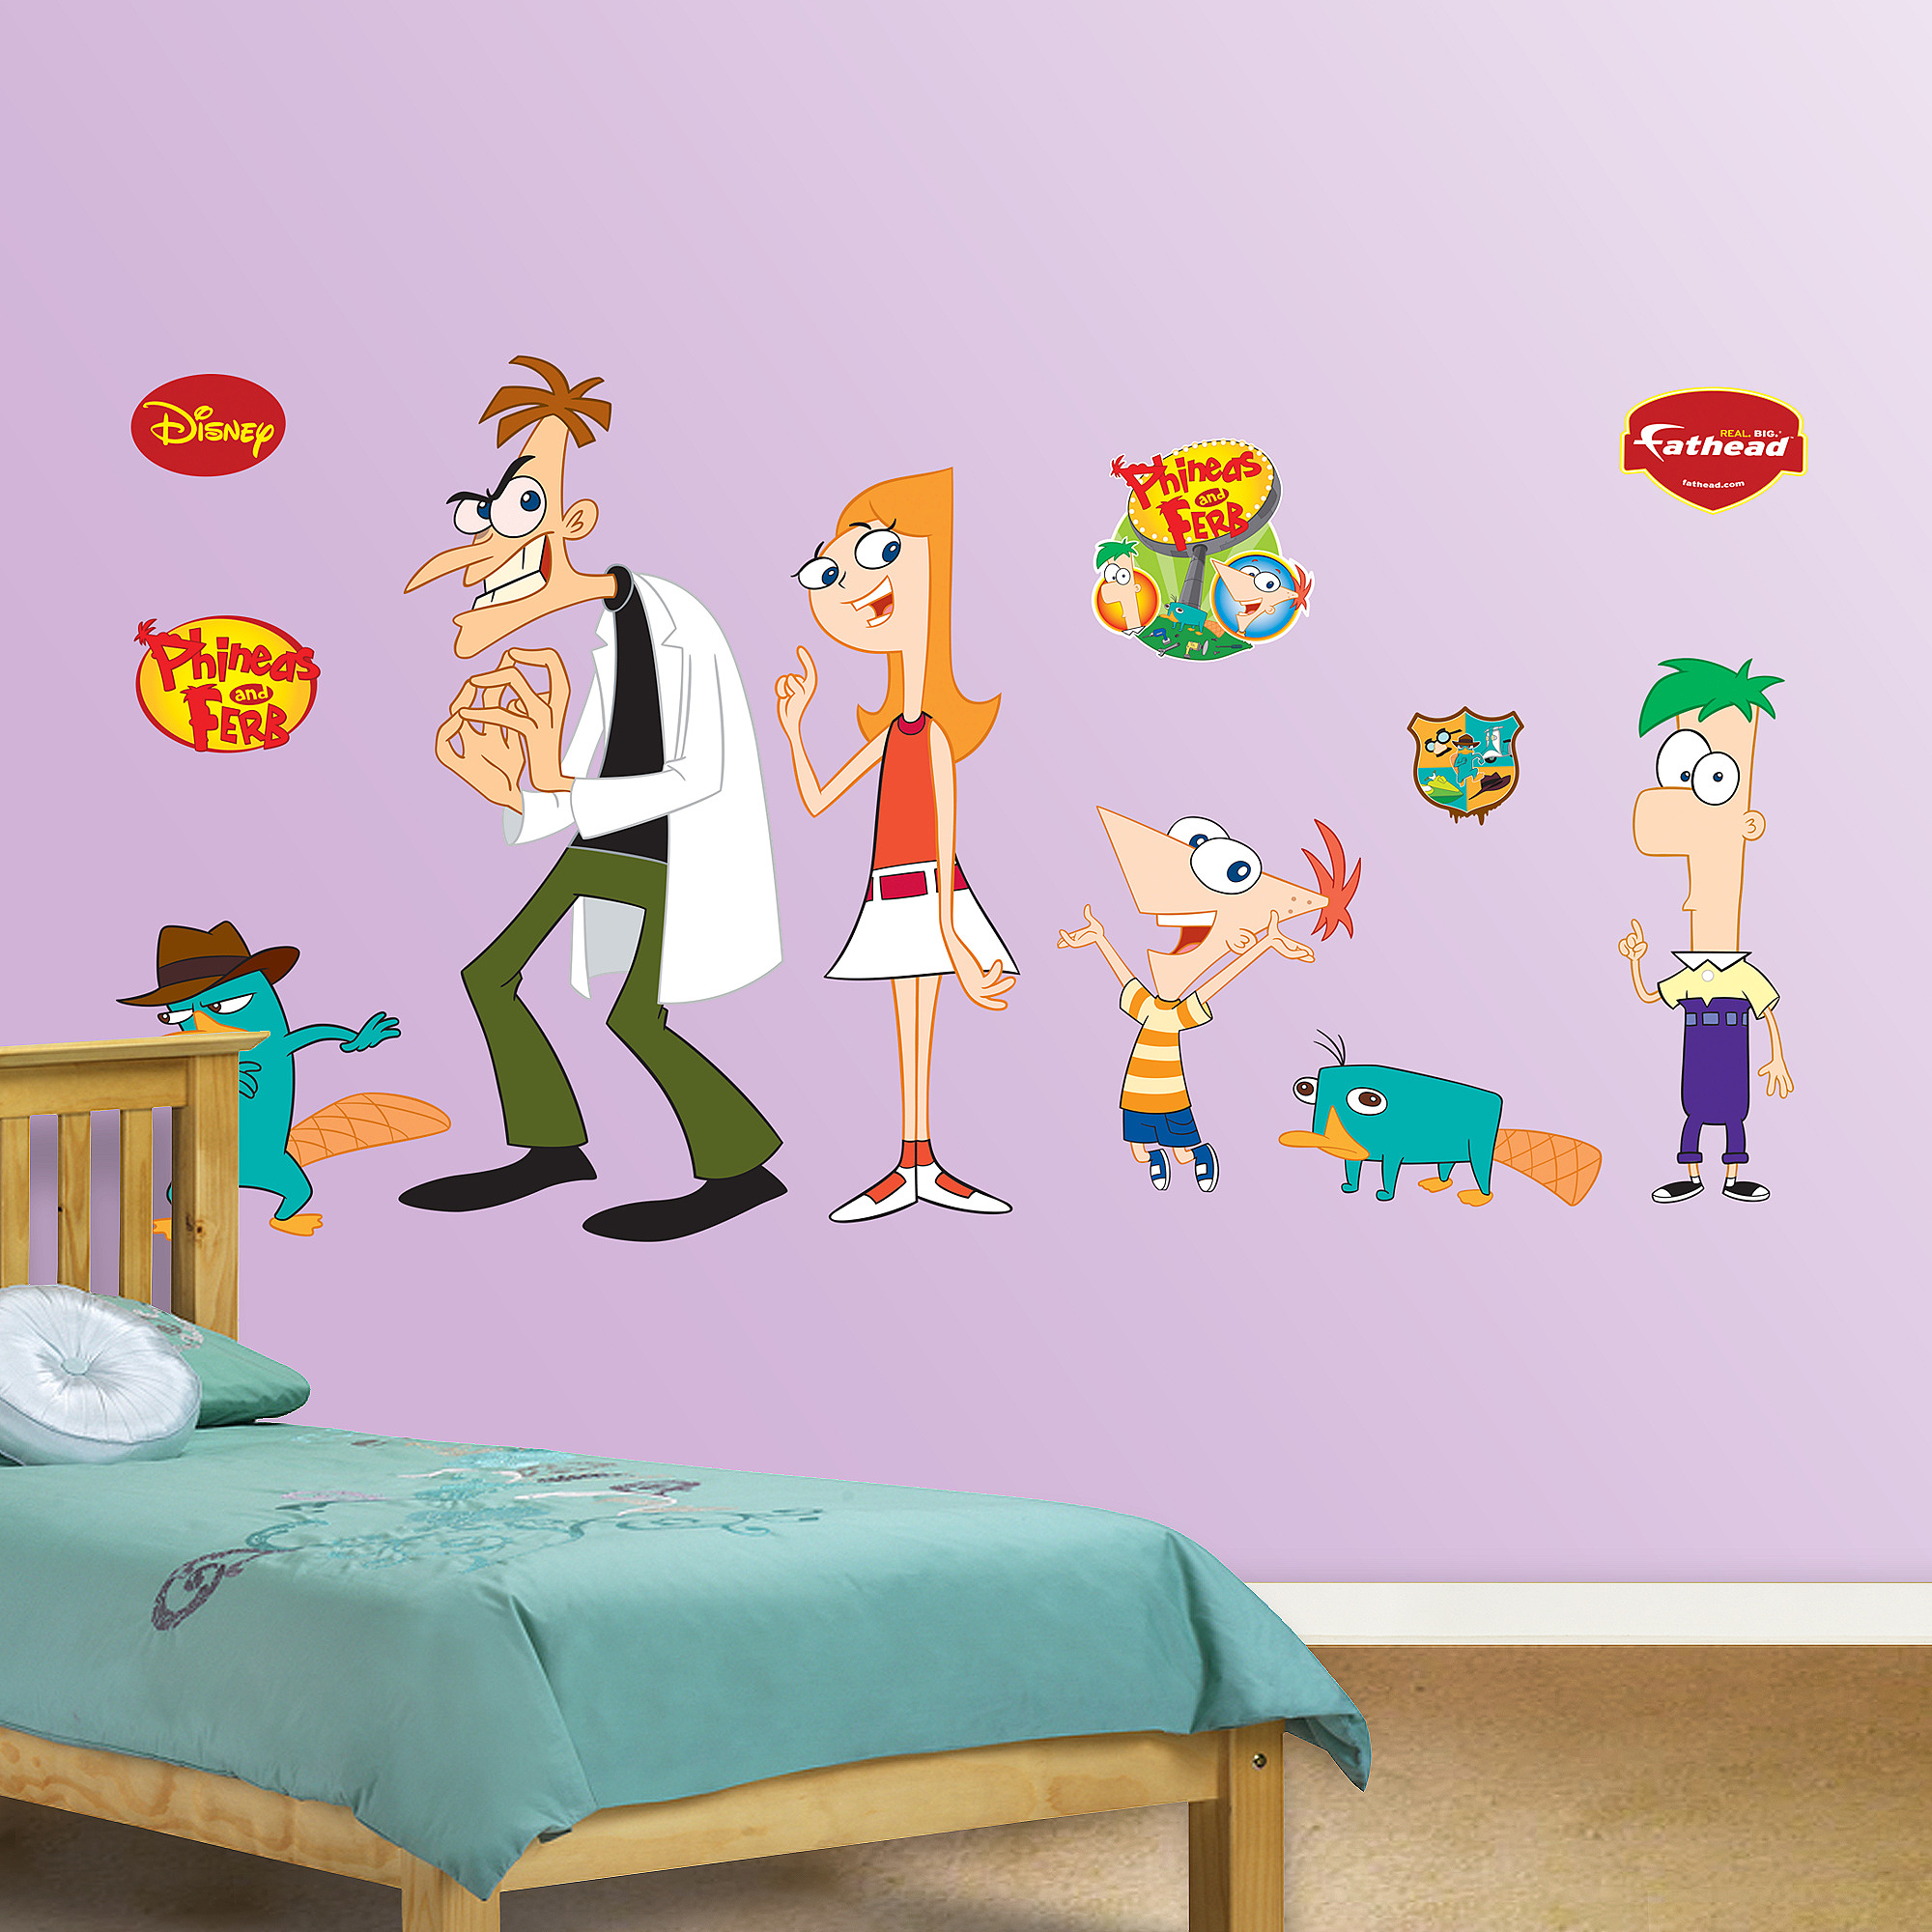 Disney Phineas and Ferb Collection Fathead